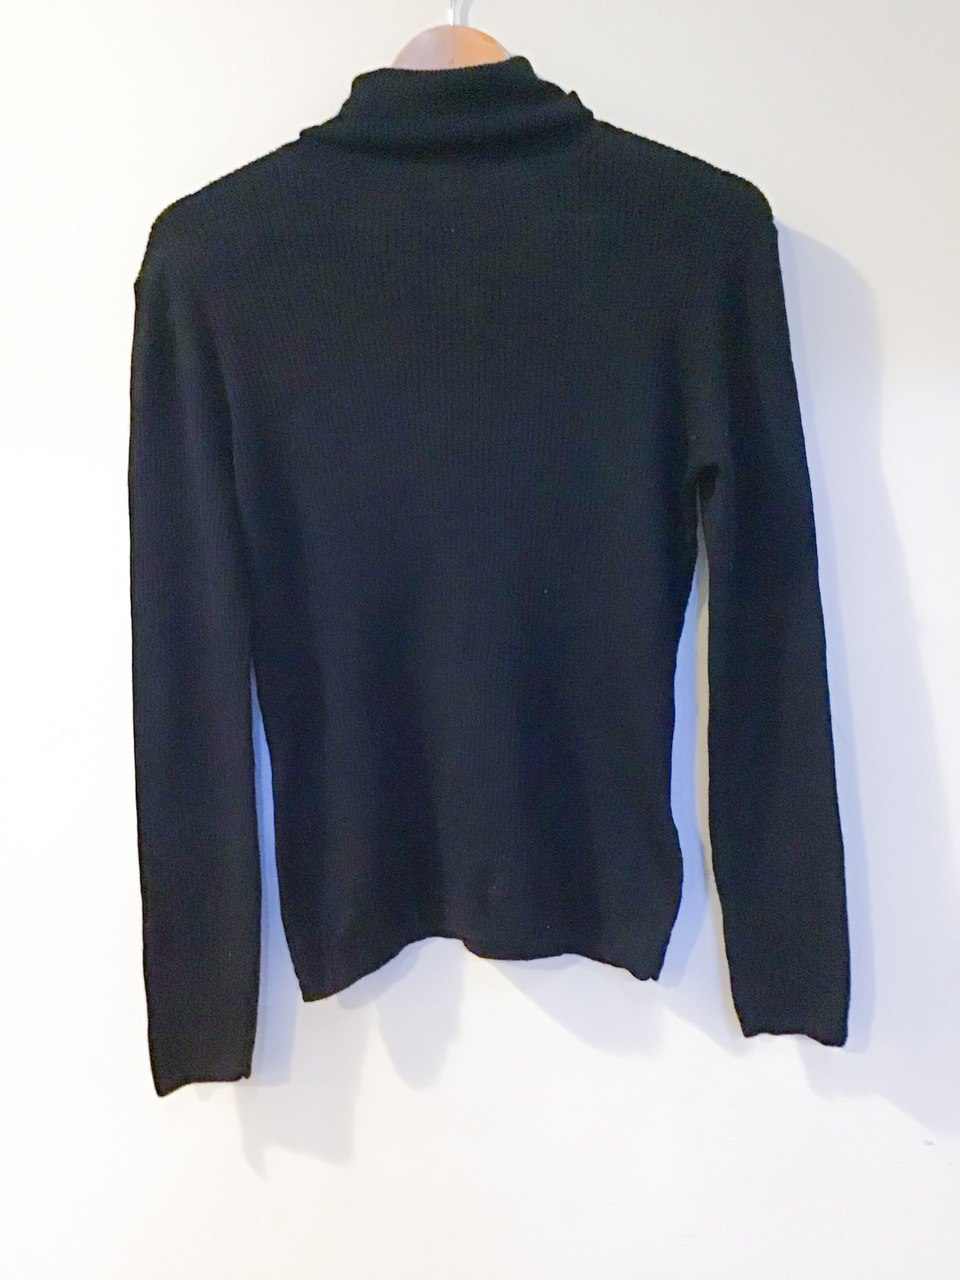 BJ1427 UNIQLO KNITWEAR